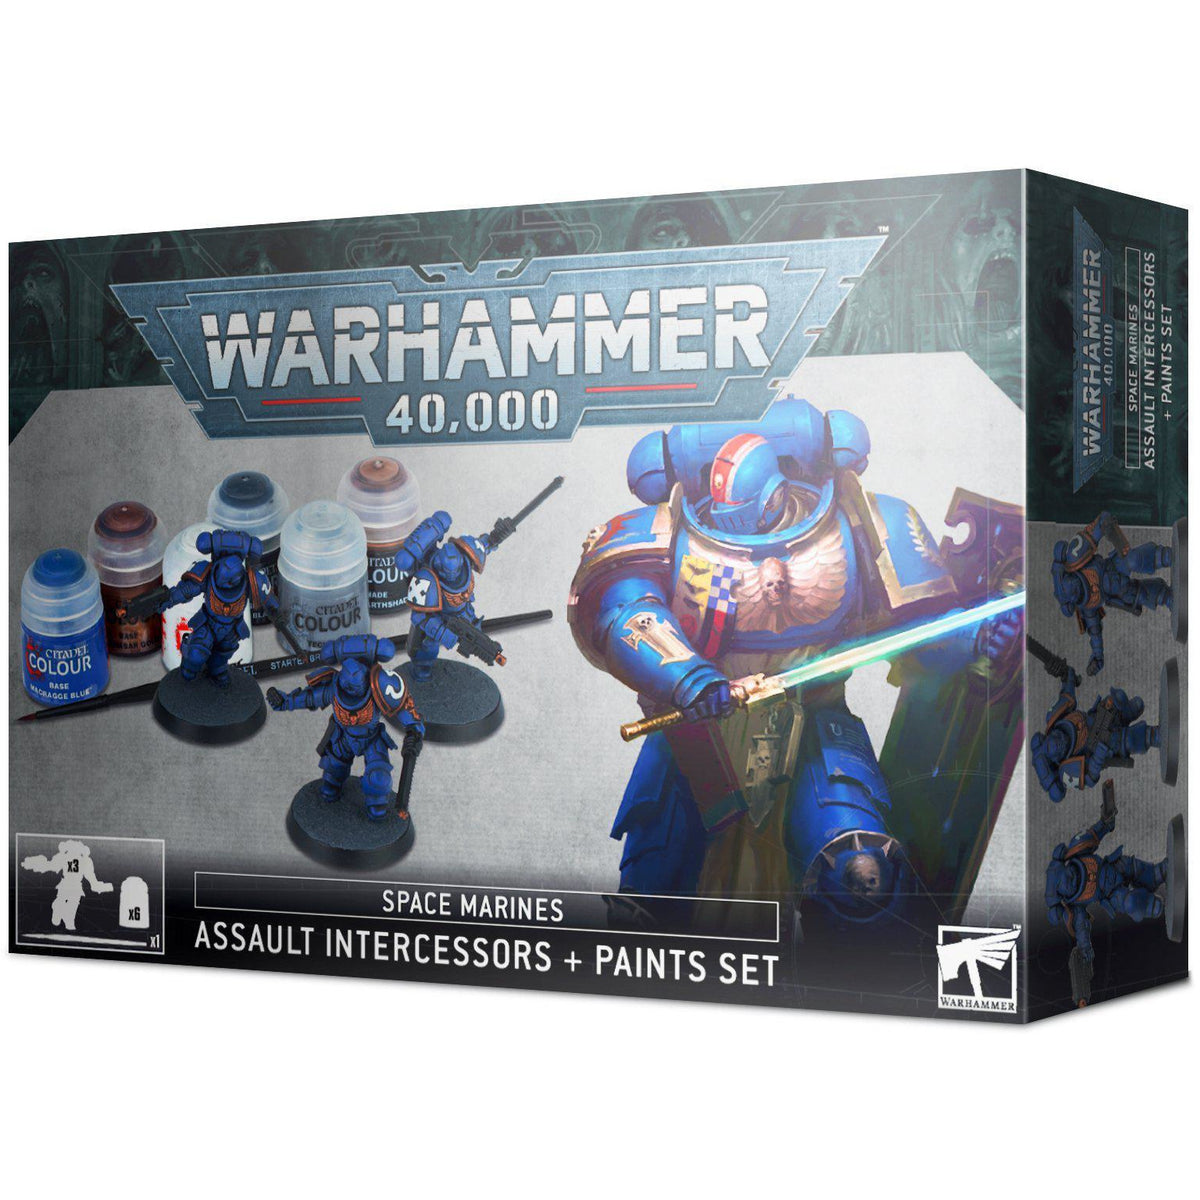 WARHAMMER 40K - SPACE MARINES ASSAULT INTERCESSOR + PAINT SET